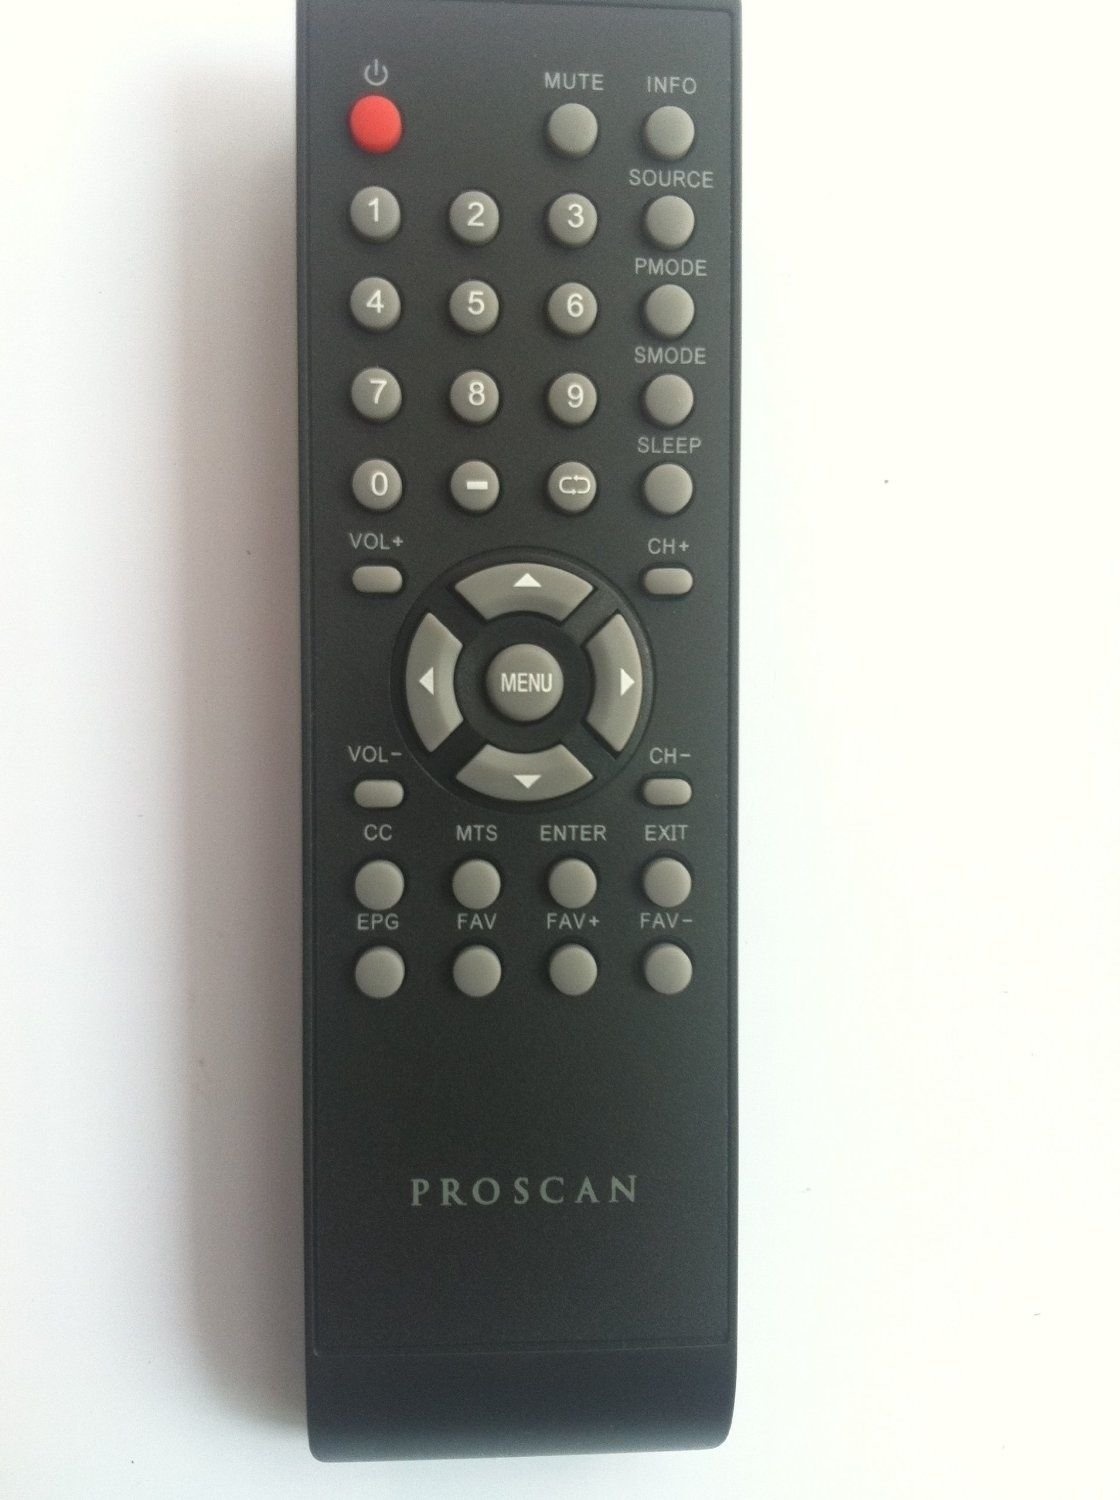 New Proscan remote for PLC3708A PLDED3992A-C PLDED5066A-E PLED4274A PLED2243A TV